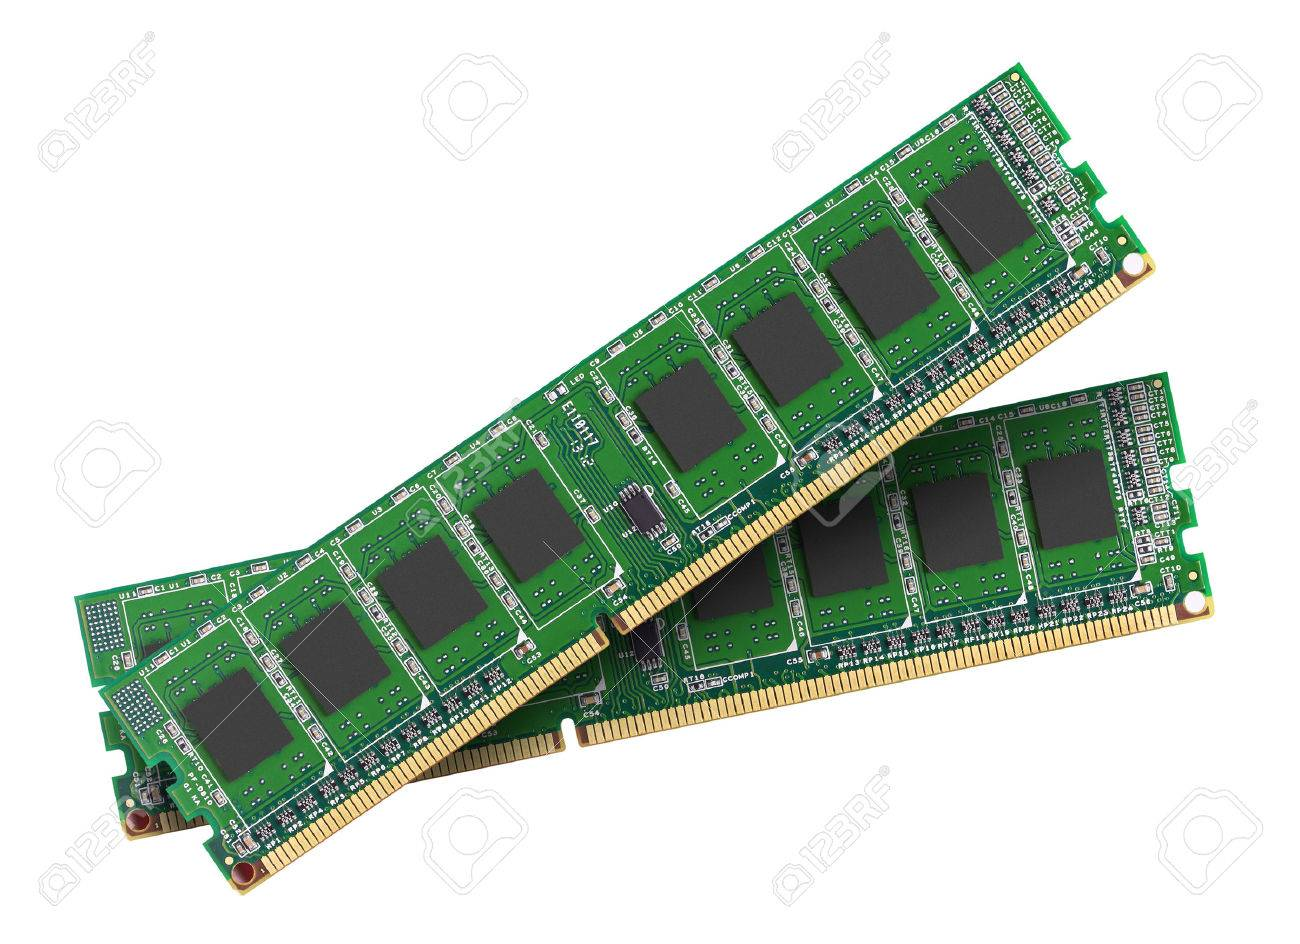 ddr ram memory module isolated on white background stock photo